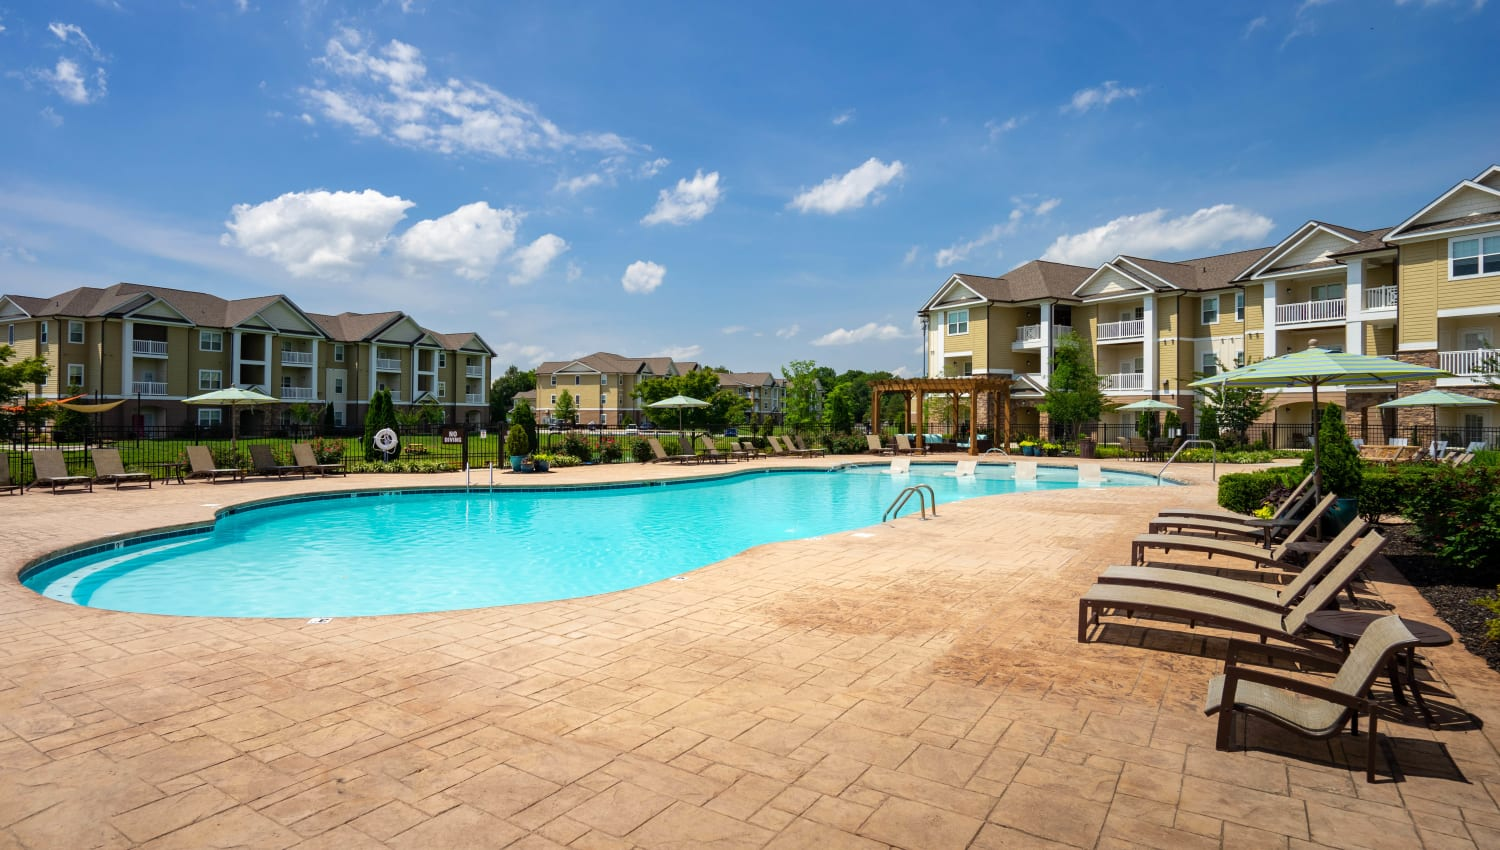 Chaise lounge chairs near the pool at Legends at White Oak in Ooltewah, Tennessee